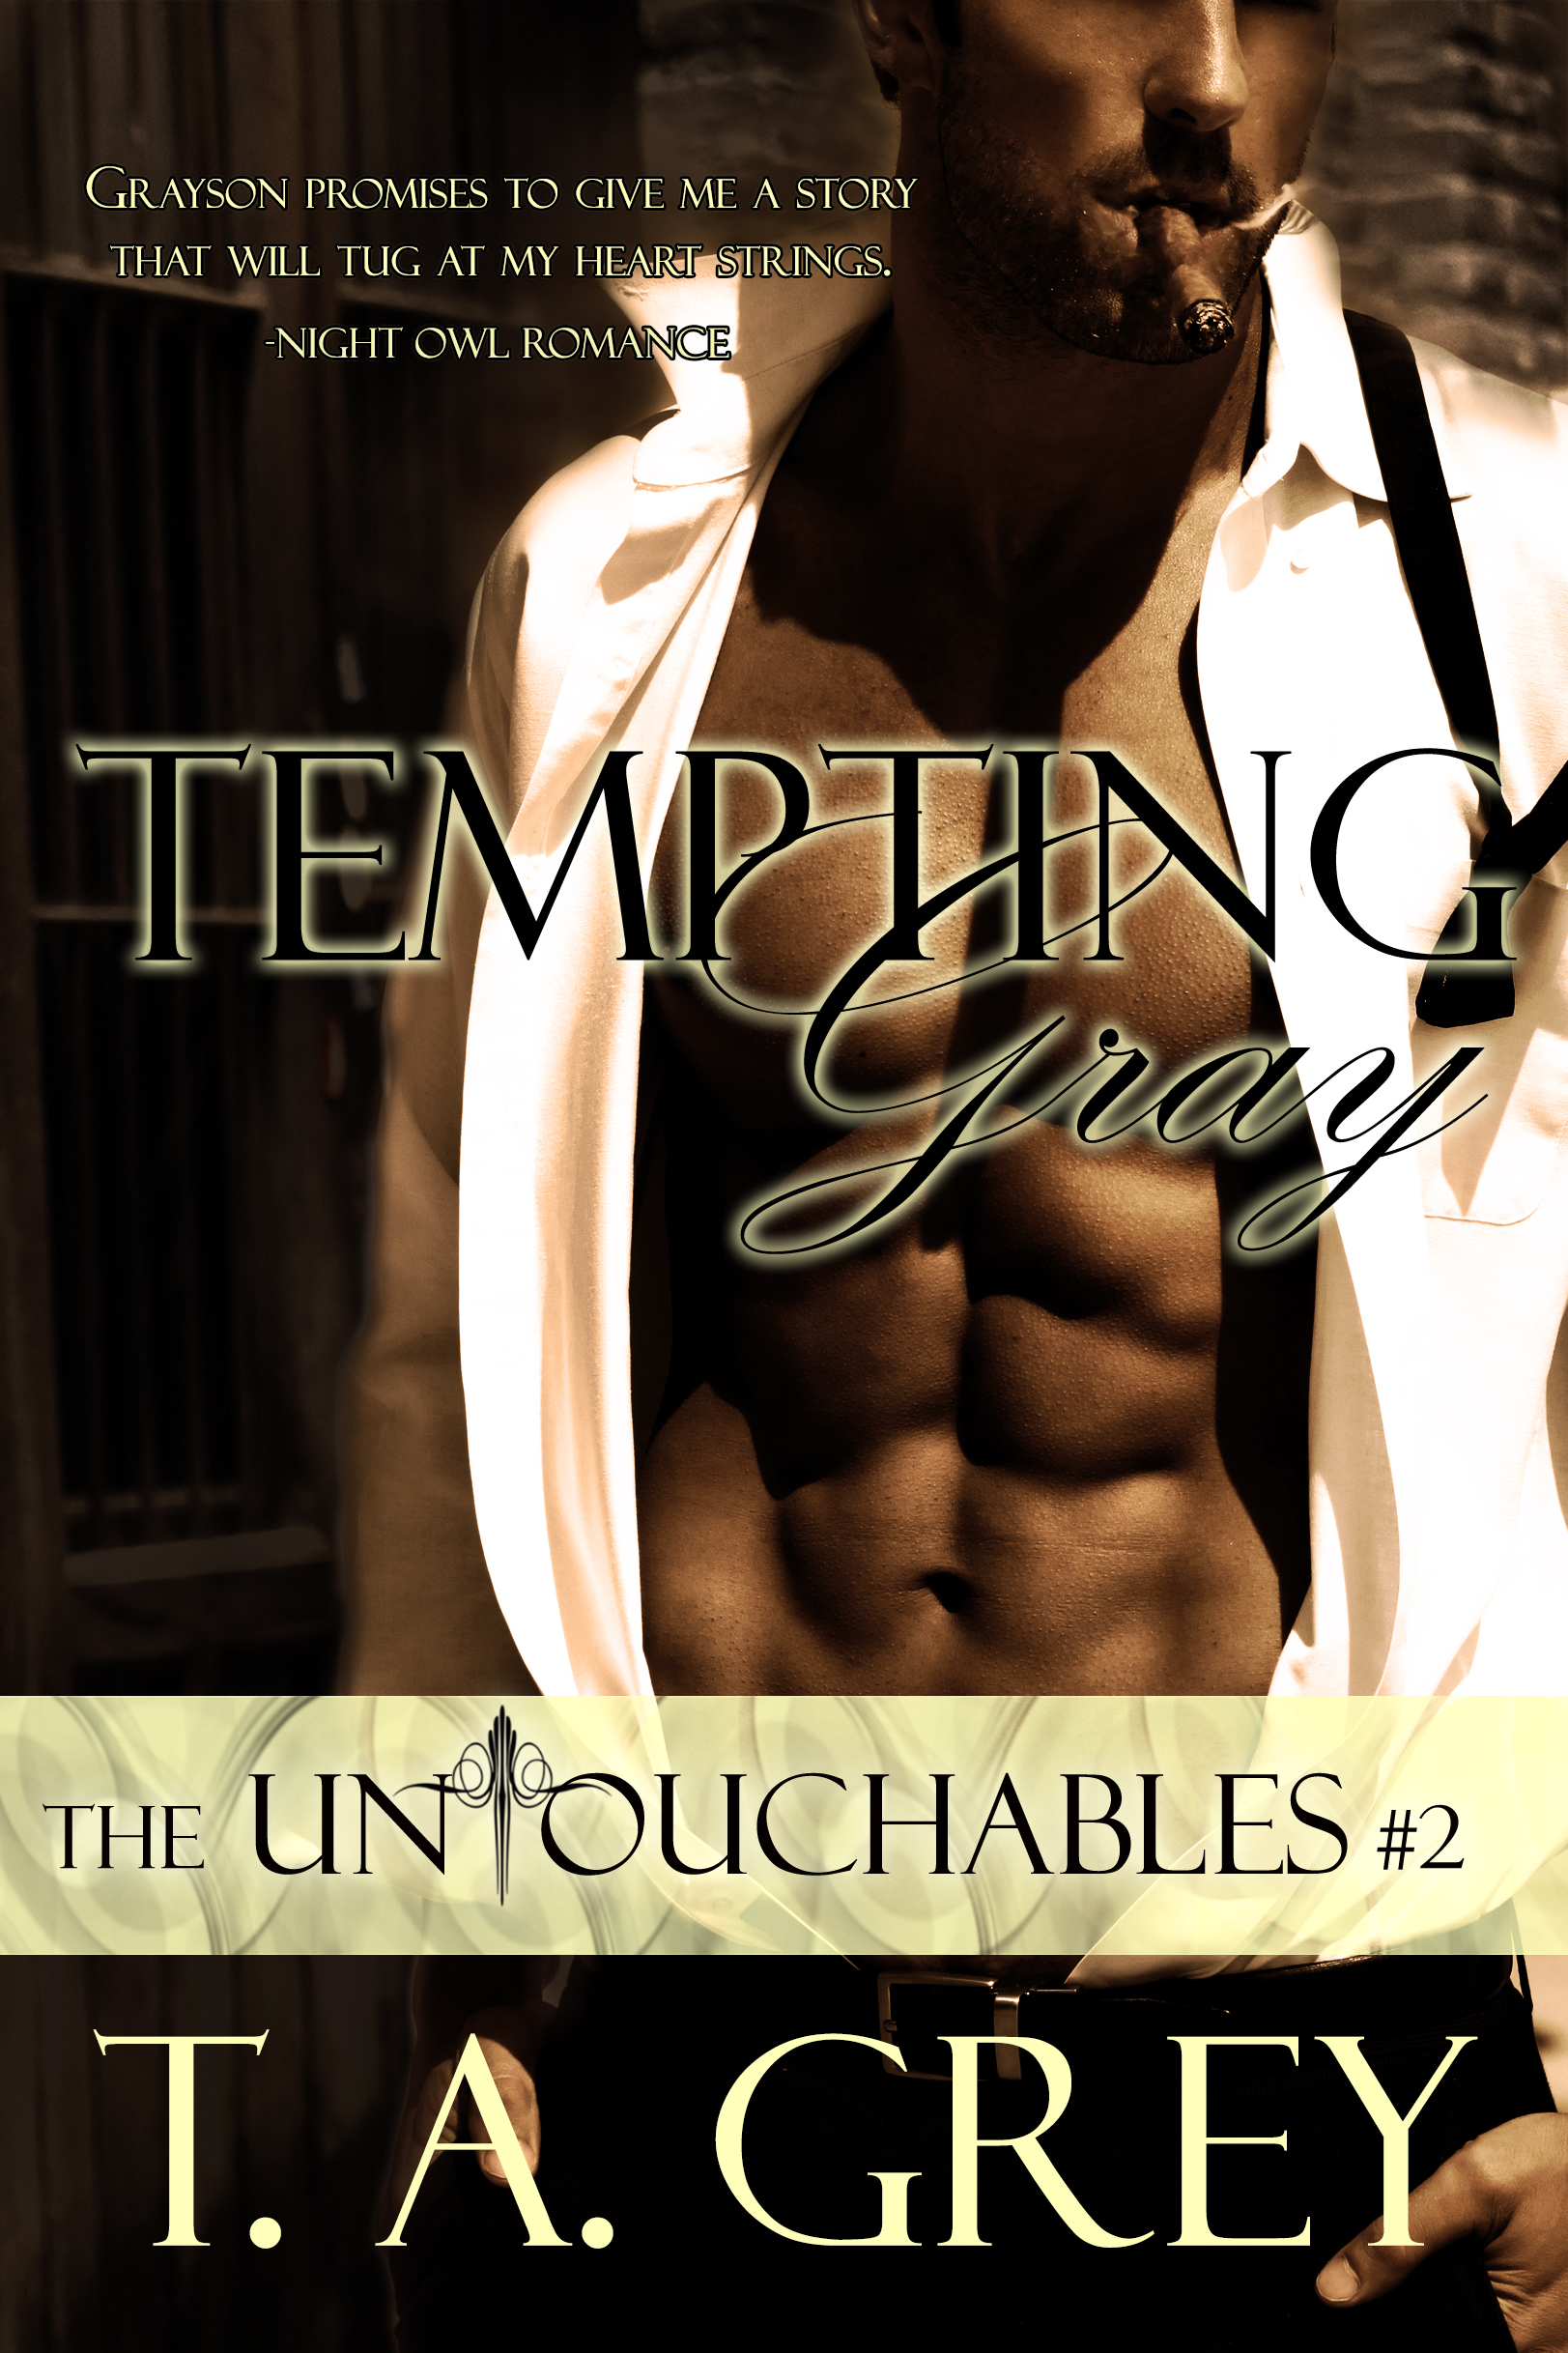 T. A. Grey - Tempting Gray (The Untouchables, #2)